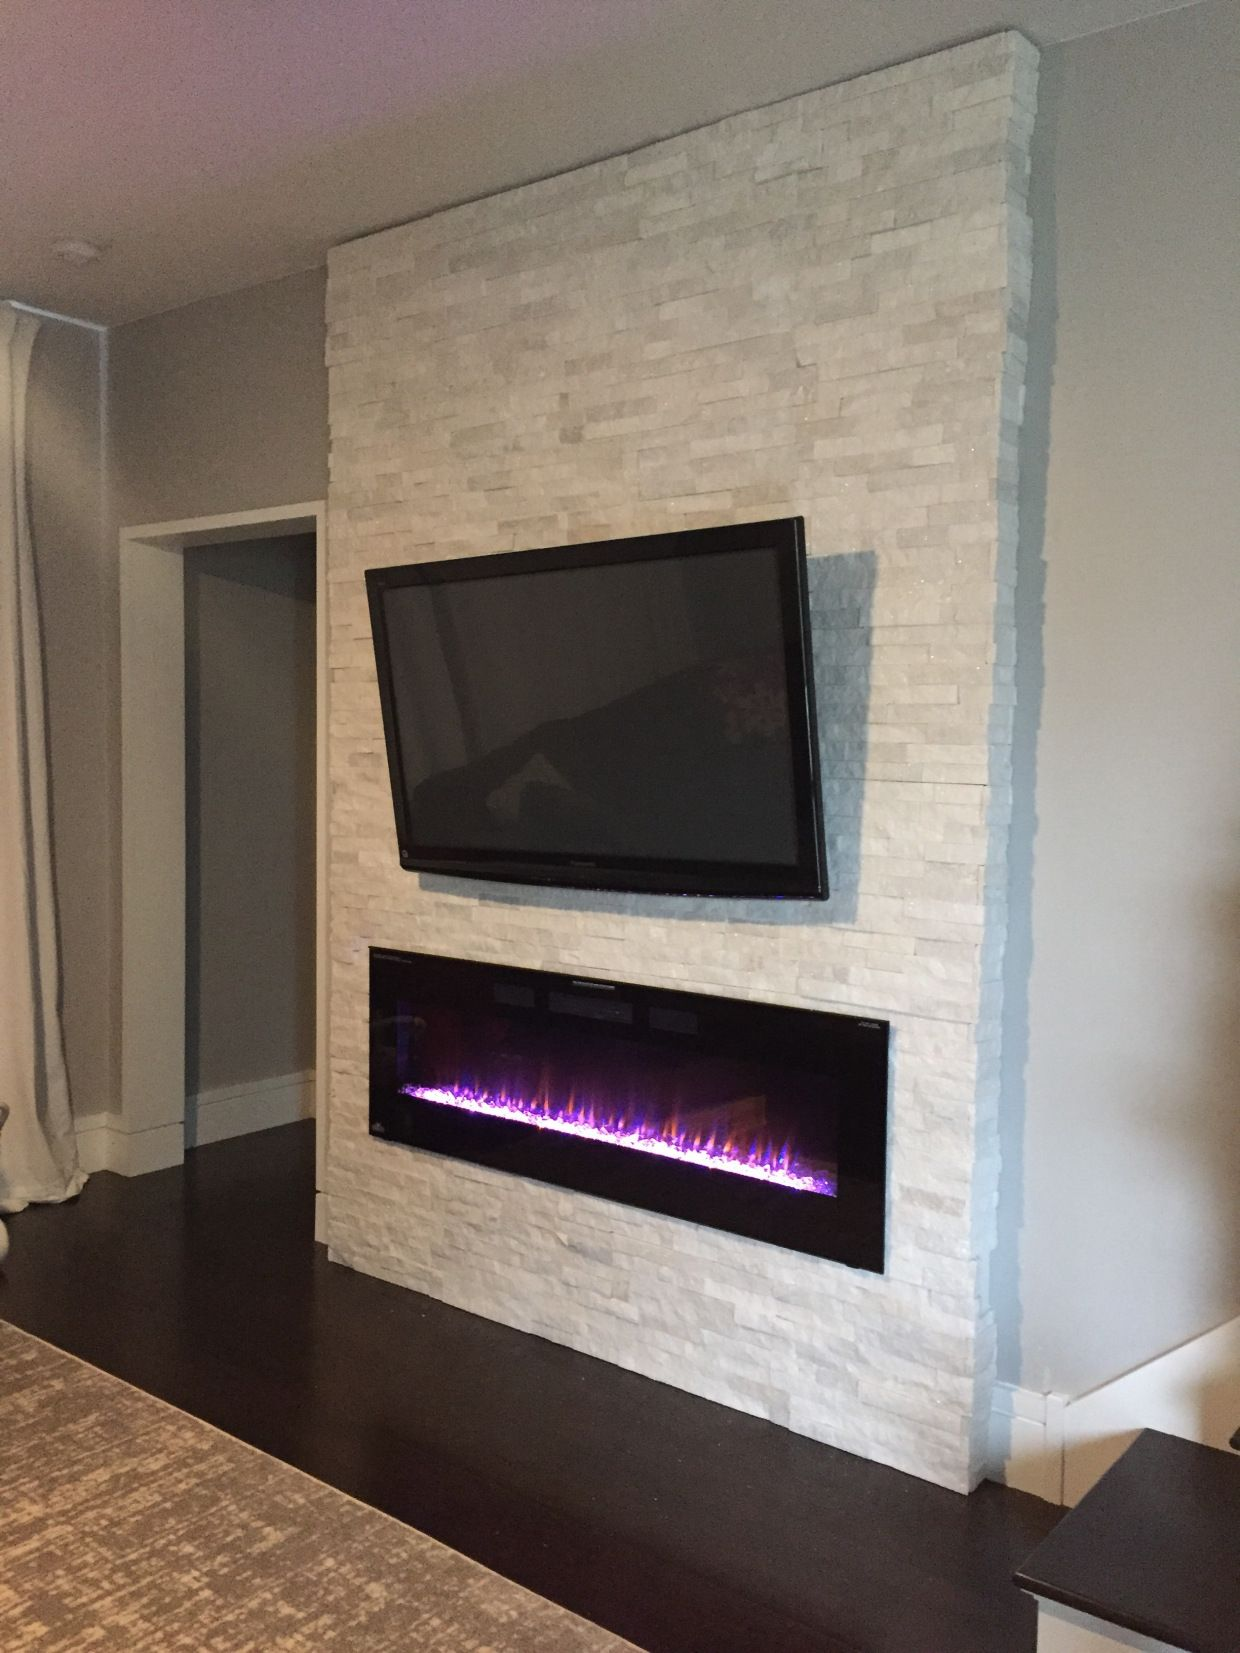 Fireplace surround finale | Interiors | Fireplace ...